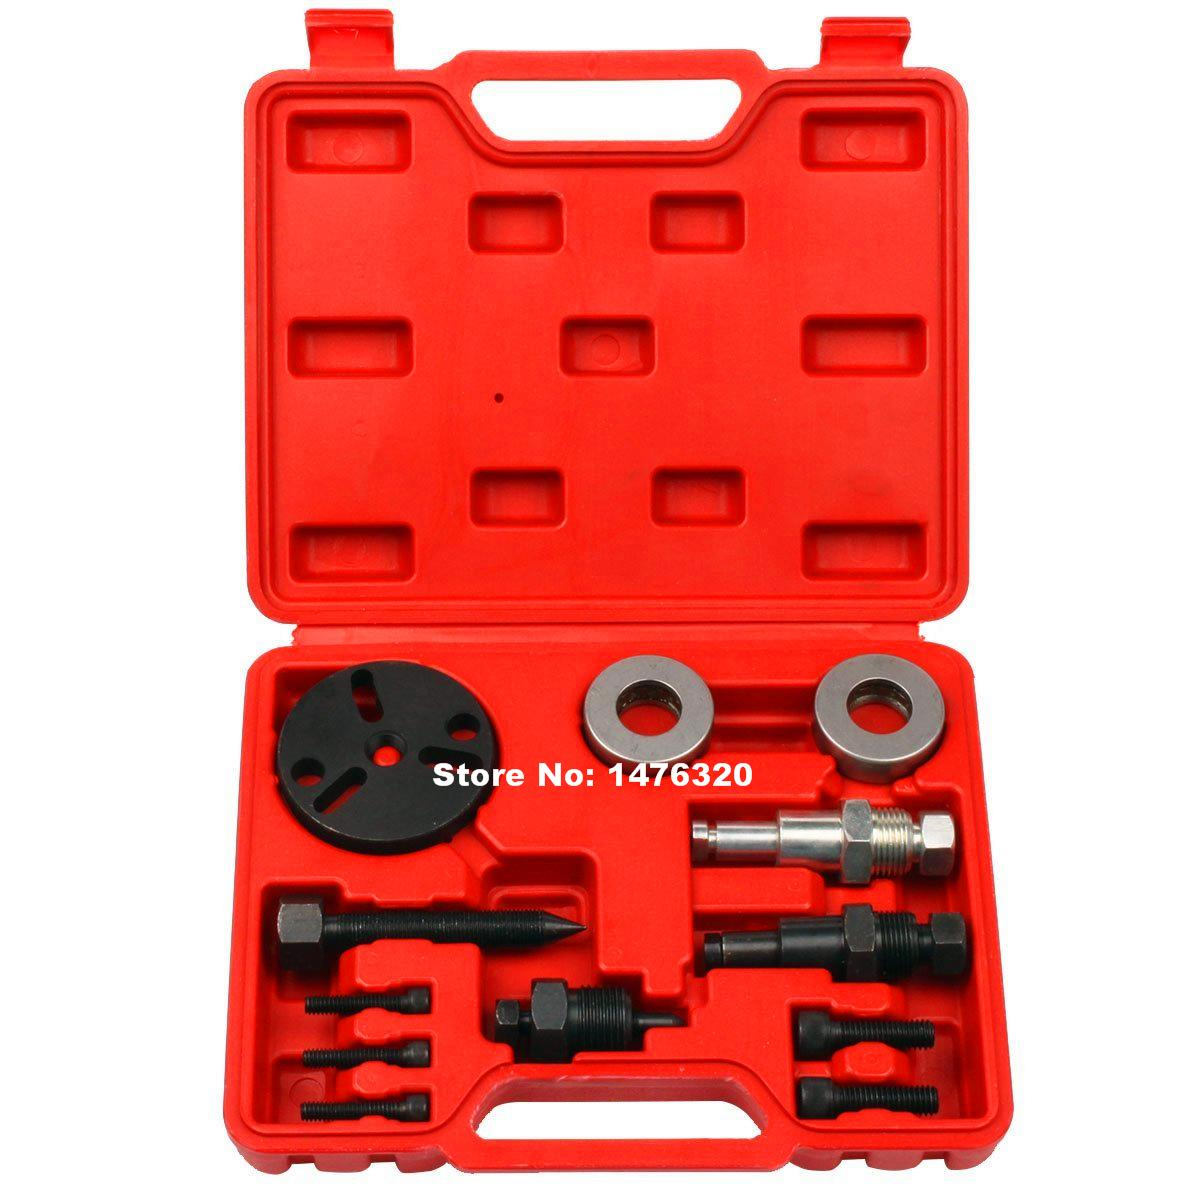 Automotive A/C Compressor Clutch Removal Puller Car Air Conditioning Pressure Clutch Remover Repair Tool Kit AT2045 harbll r134a universal automotive air conditioning compressor disassembly tool wrench car air conditioning repair tools kit